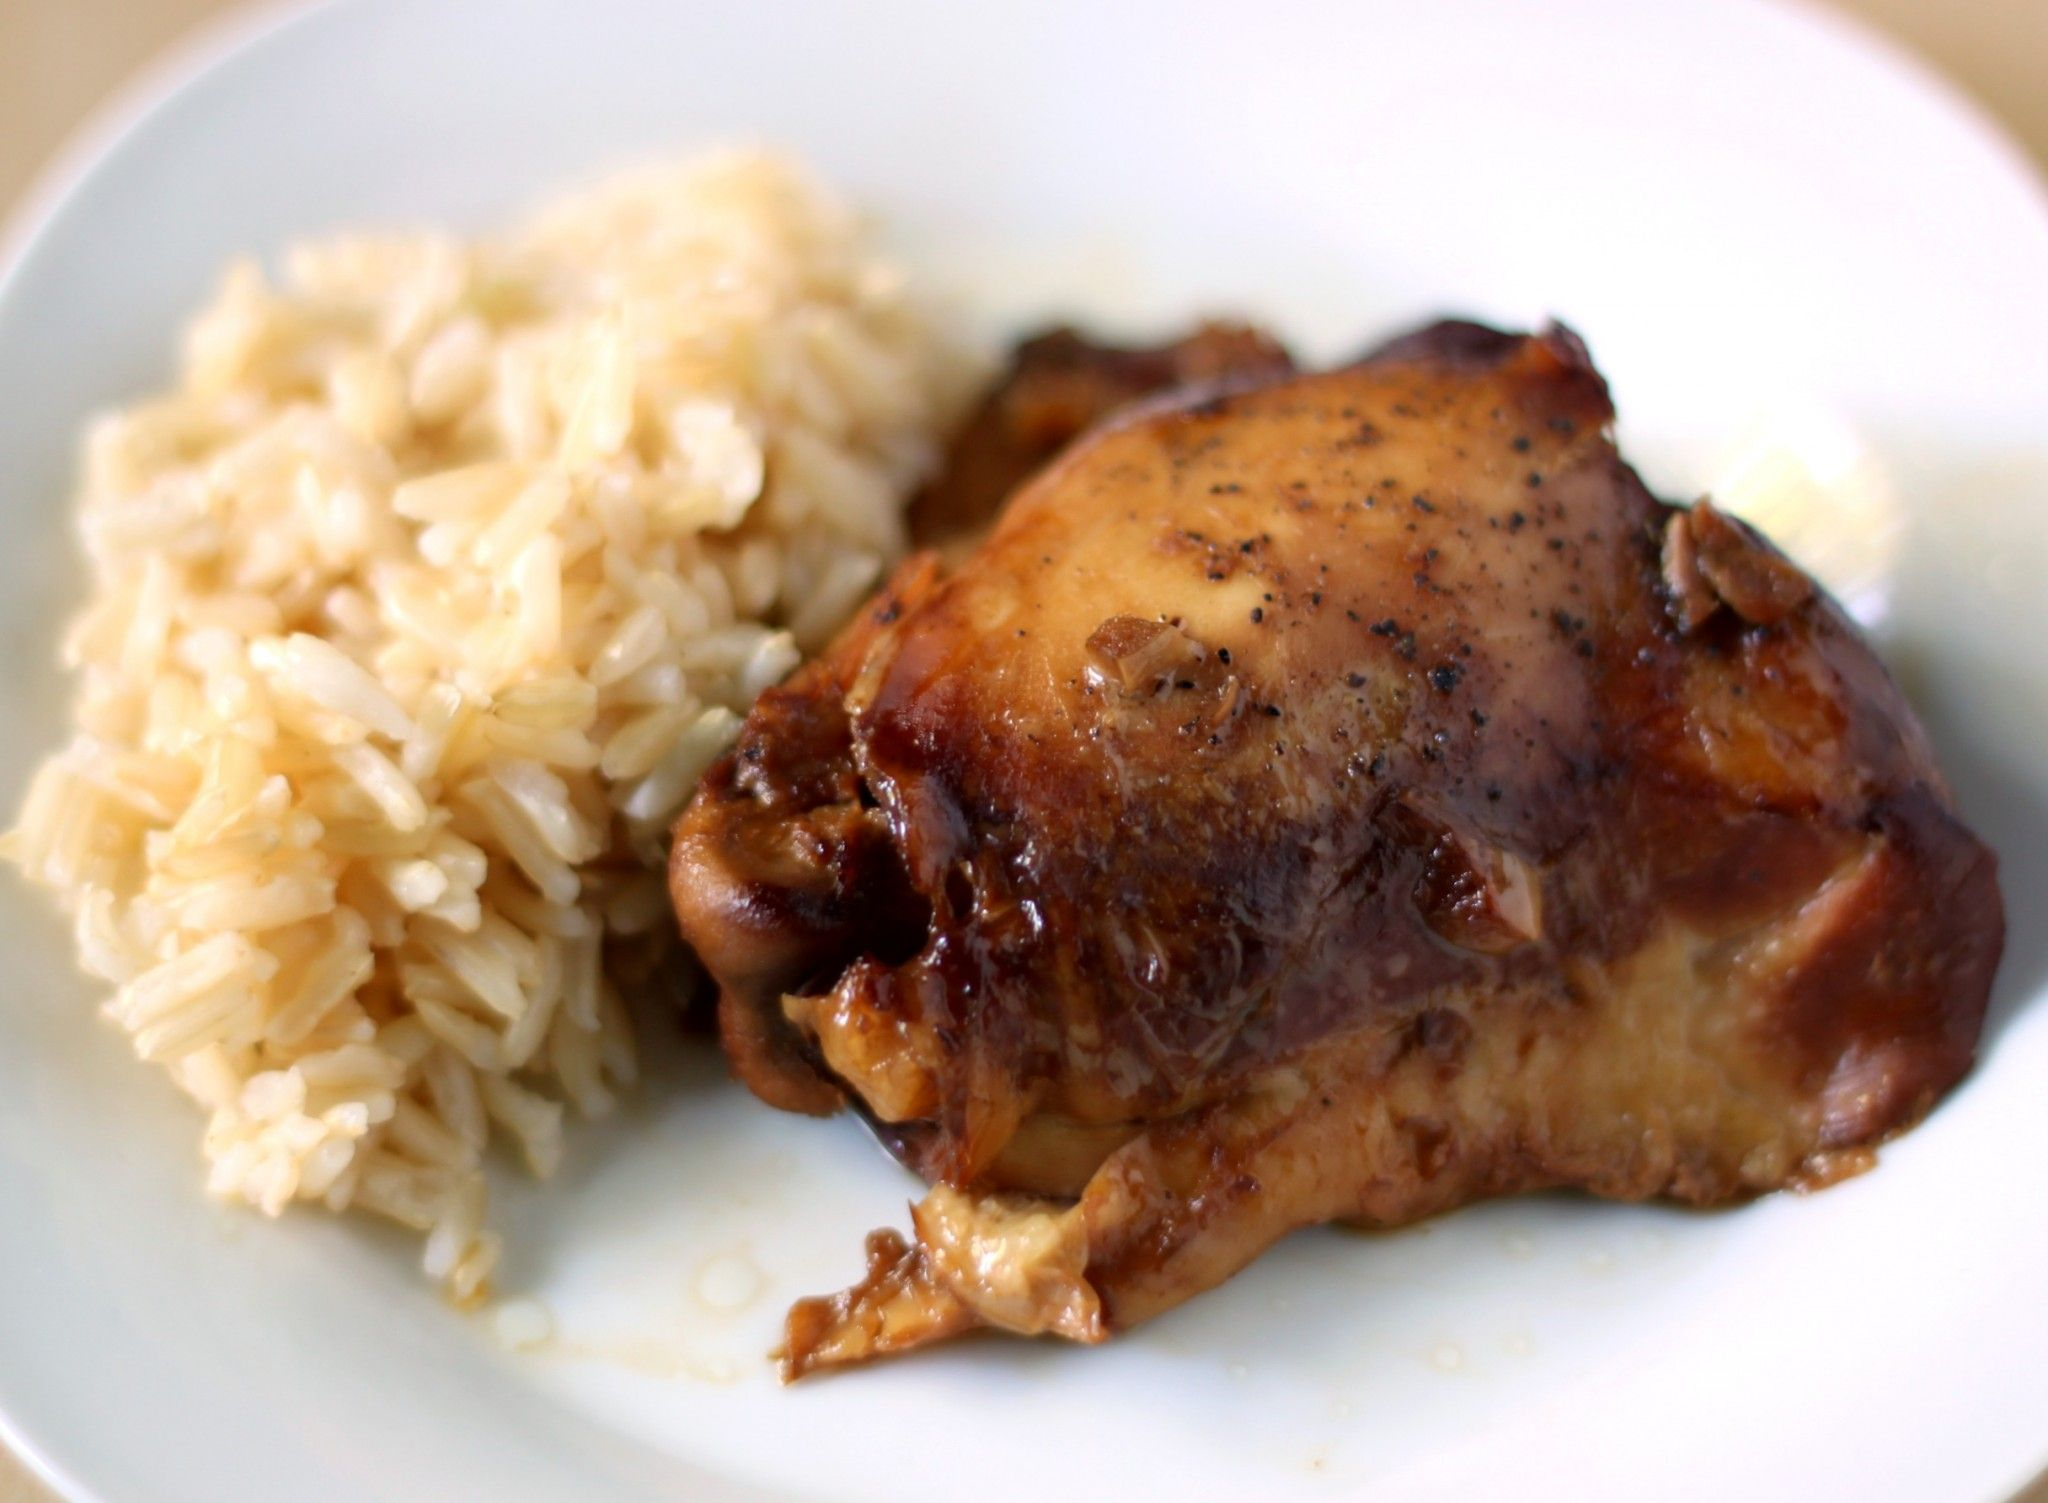 Slow cooker chicken adobo with rice 52kitchenadventures.com